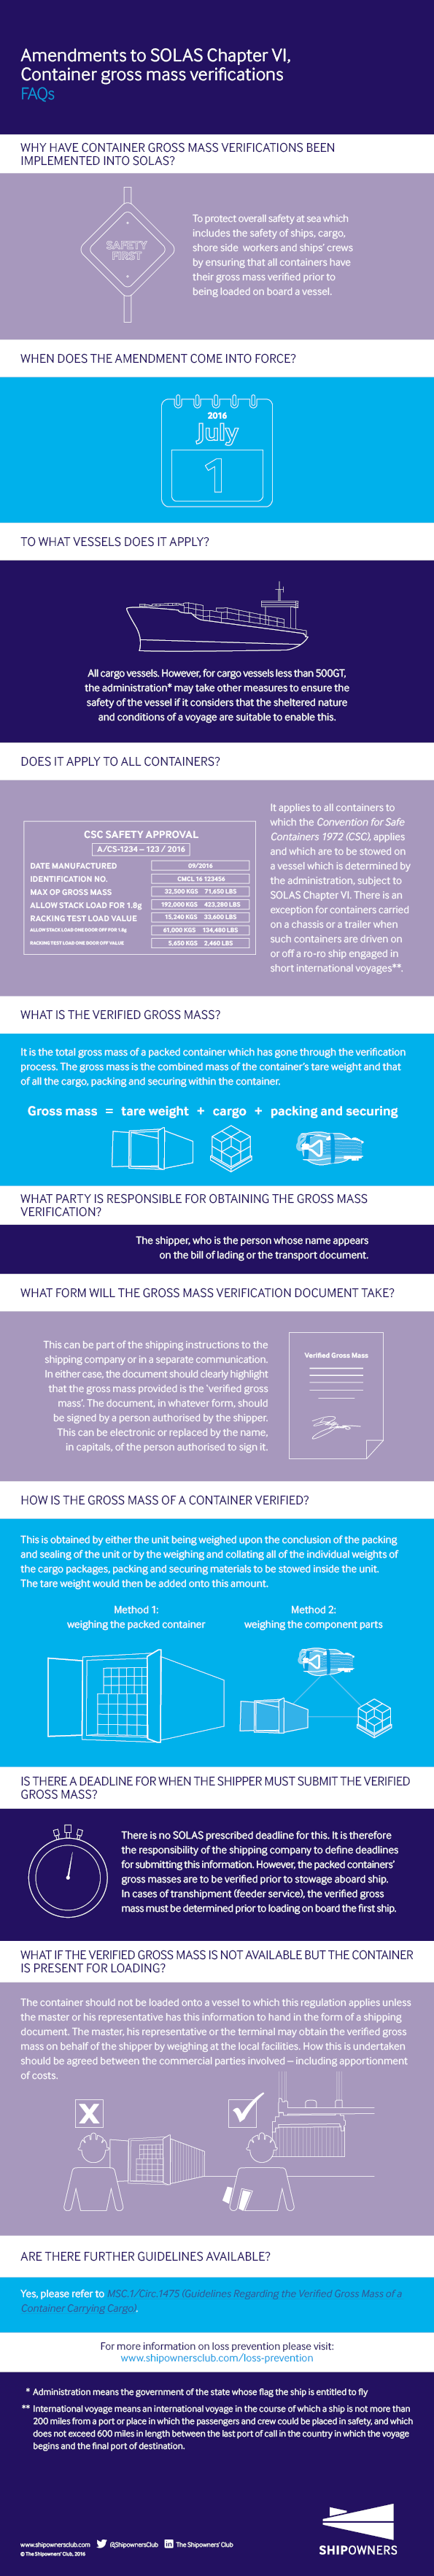 INGR Amendments to SOLAS Chapter VI Container Gross Mass Verifications FAQs